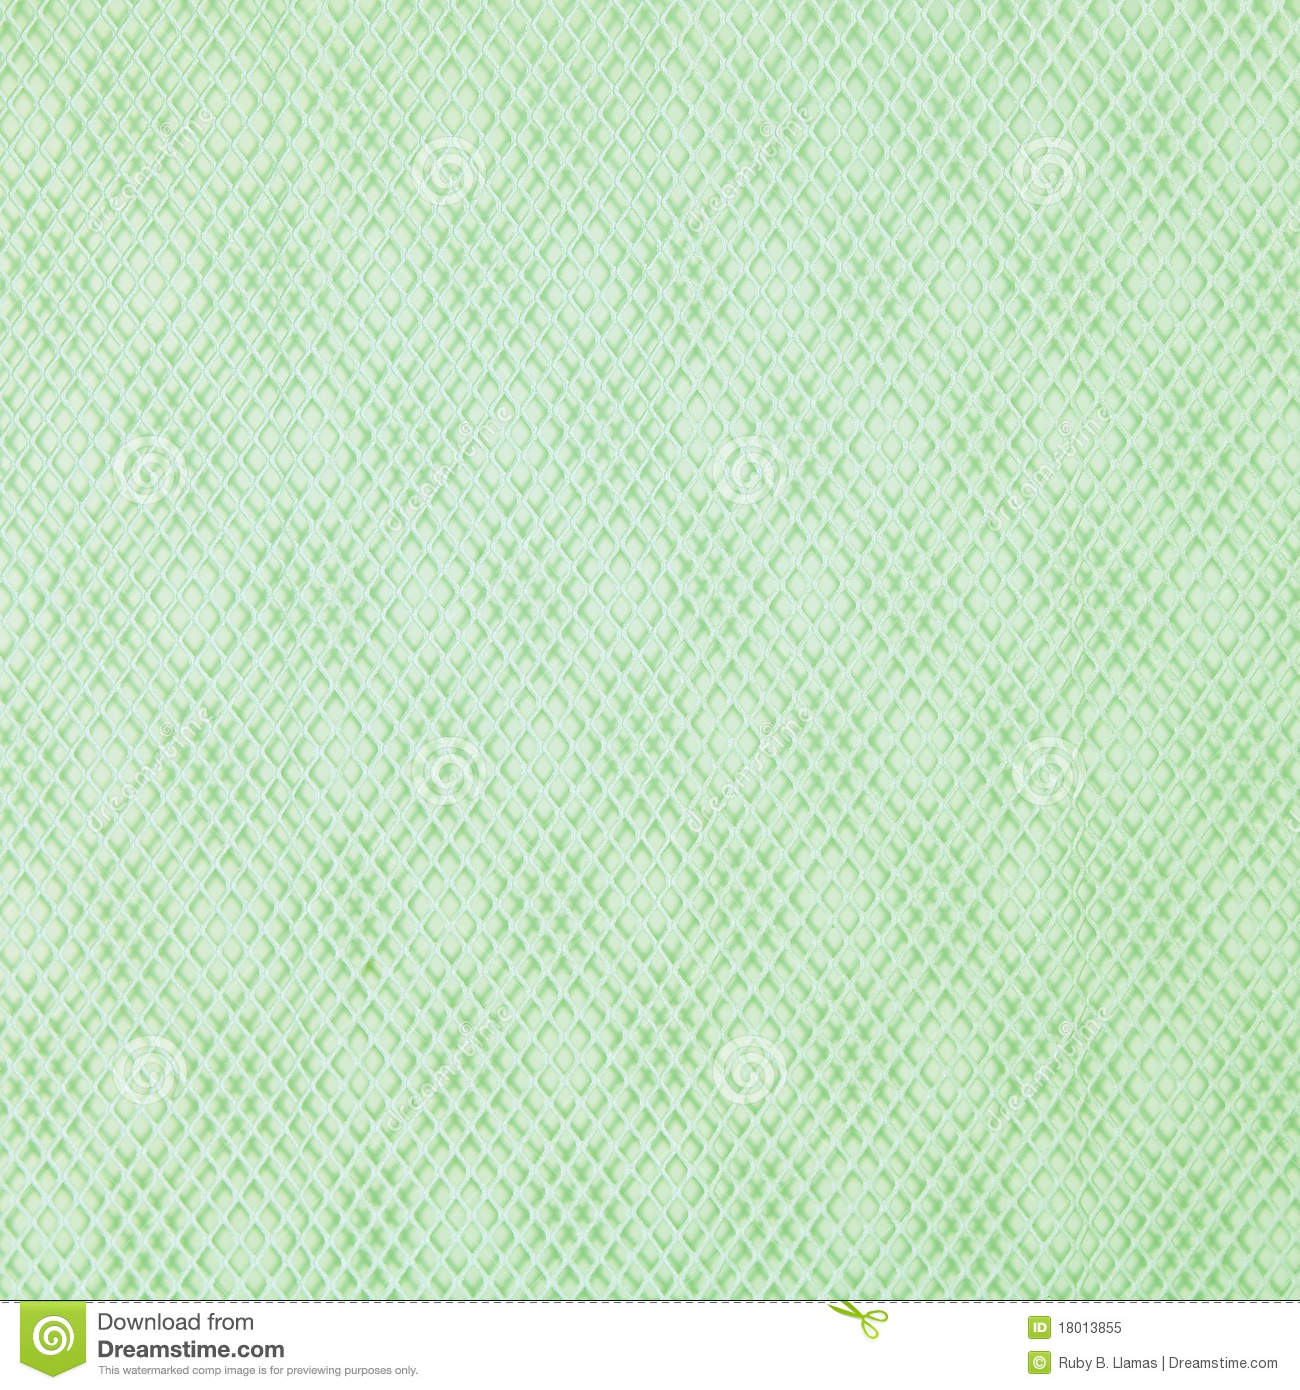 Grill Weave Texture Background - Green